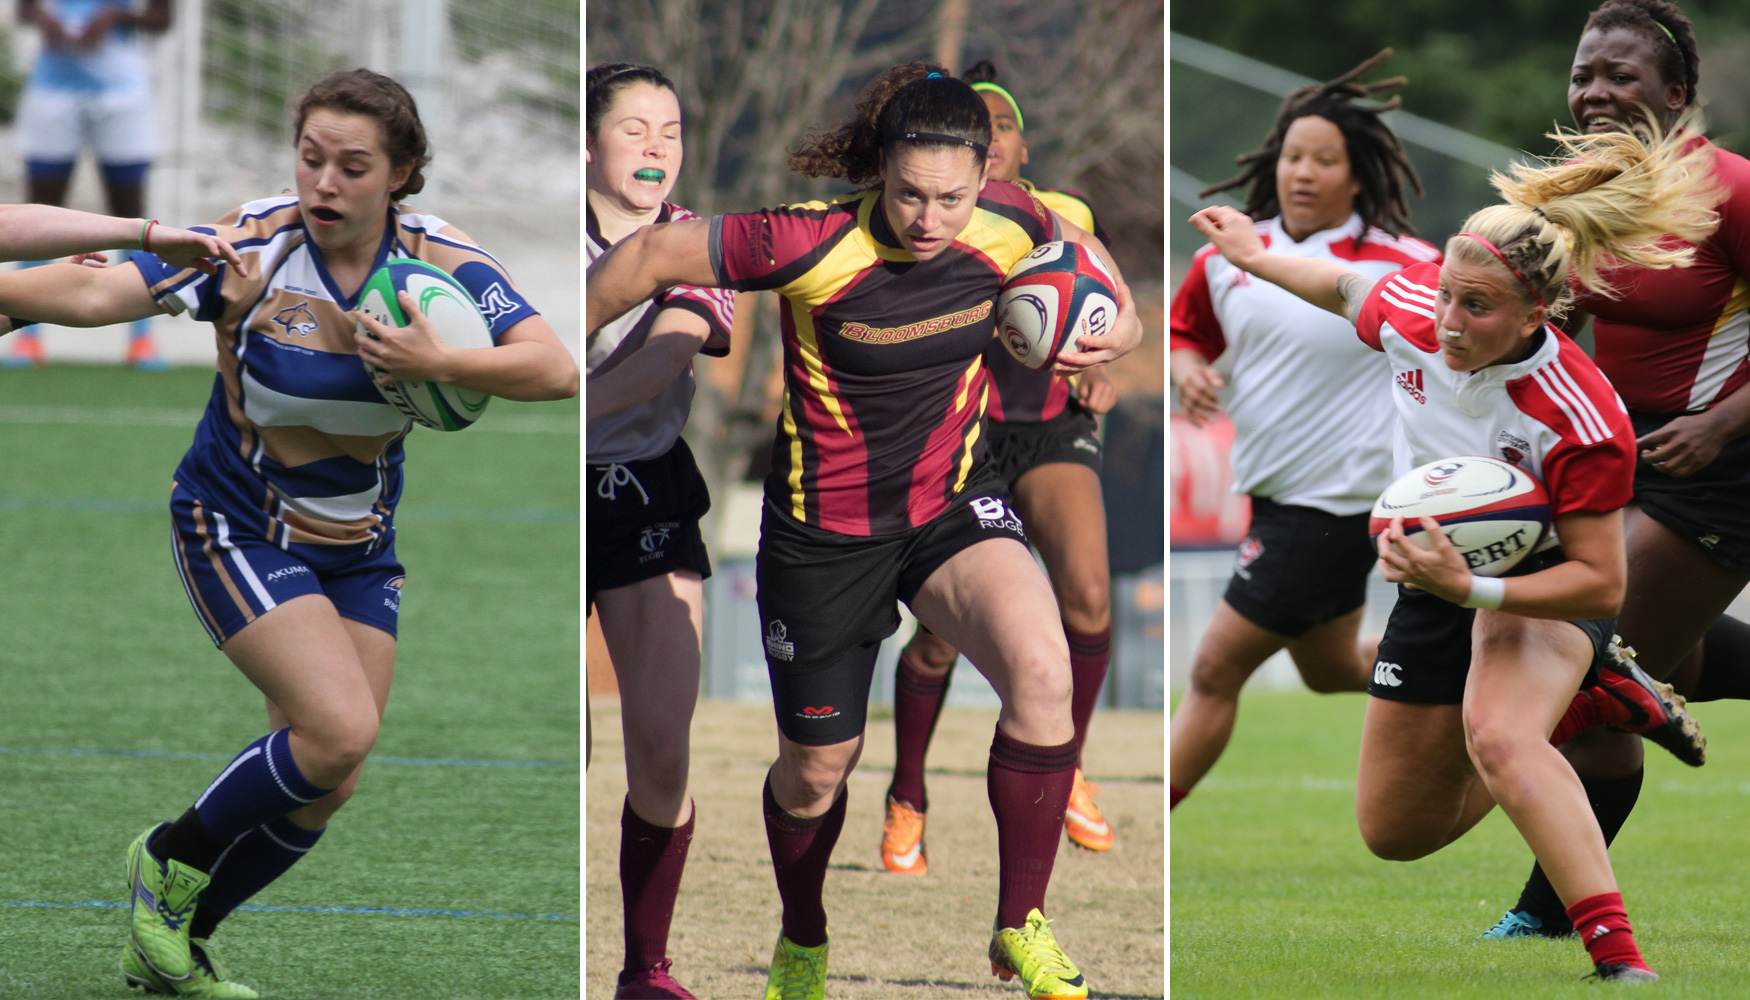 USA College 7s: Davenport up for second National Championship in first Women's DII bracket at College 7s